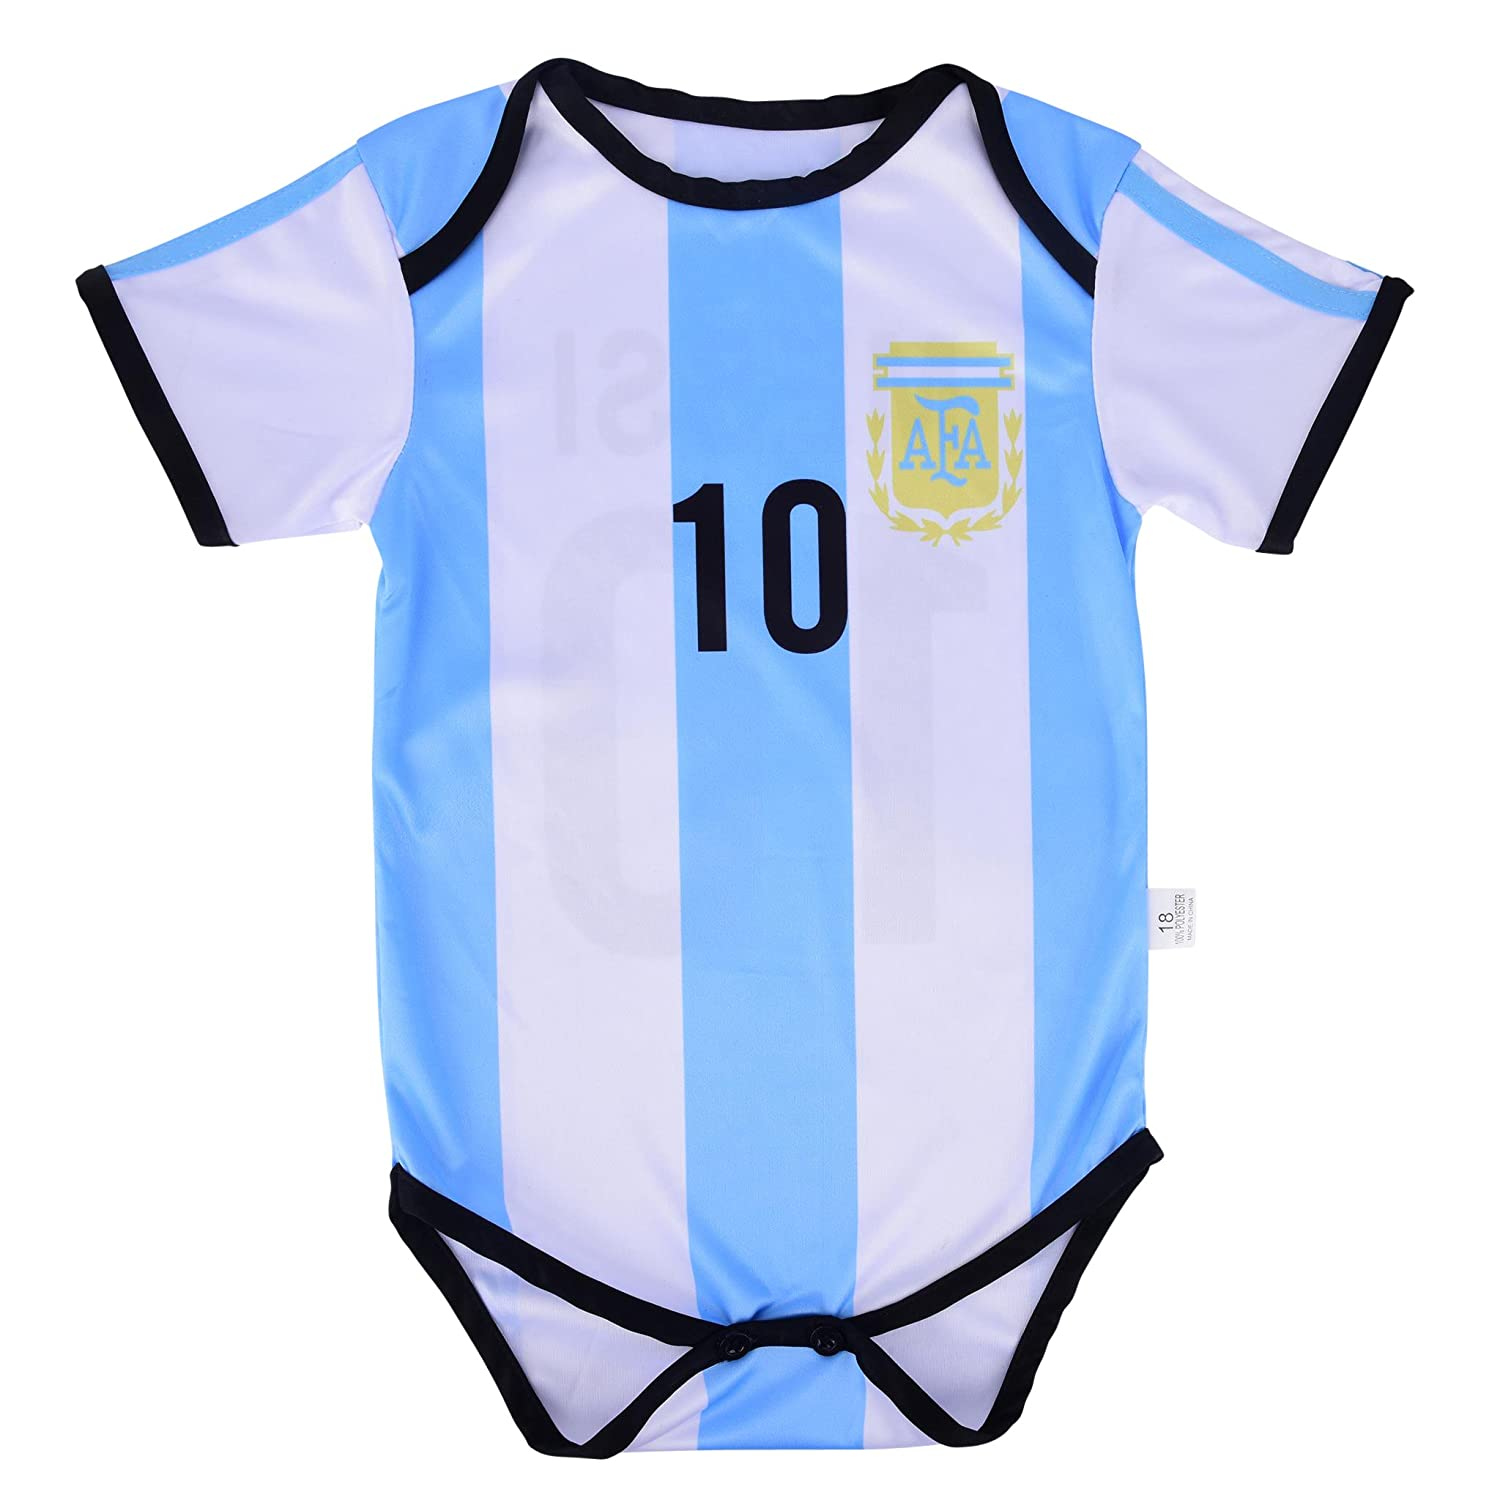 5af239aa6 Amazon.com   Leo Messi  10 Argentina Soccer Jersey Baby Infant   Toddler  Onesie Romper Premium Quality   Sports   Outdoors